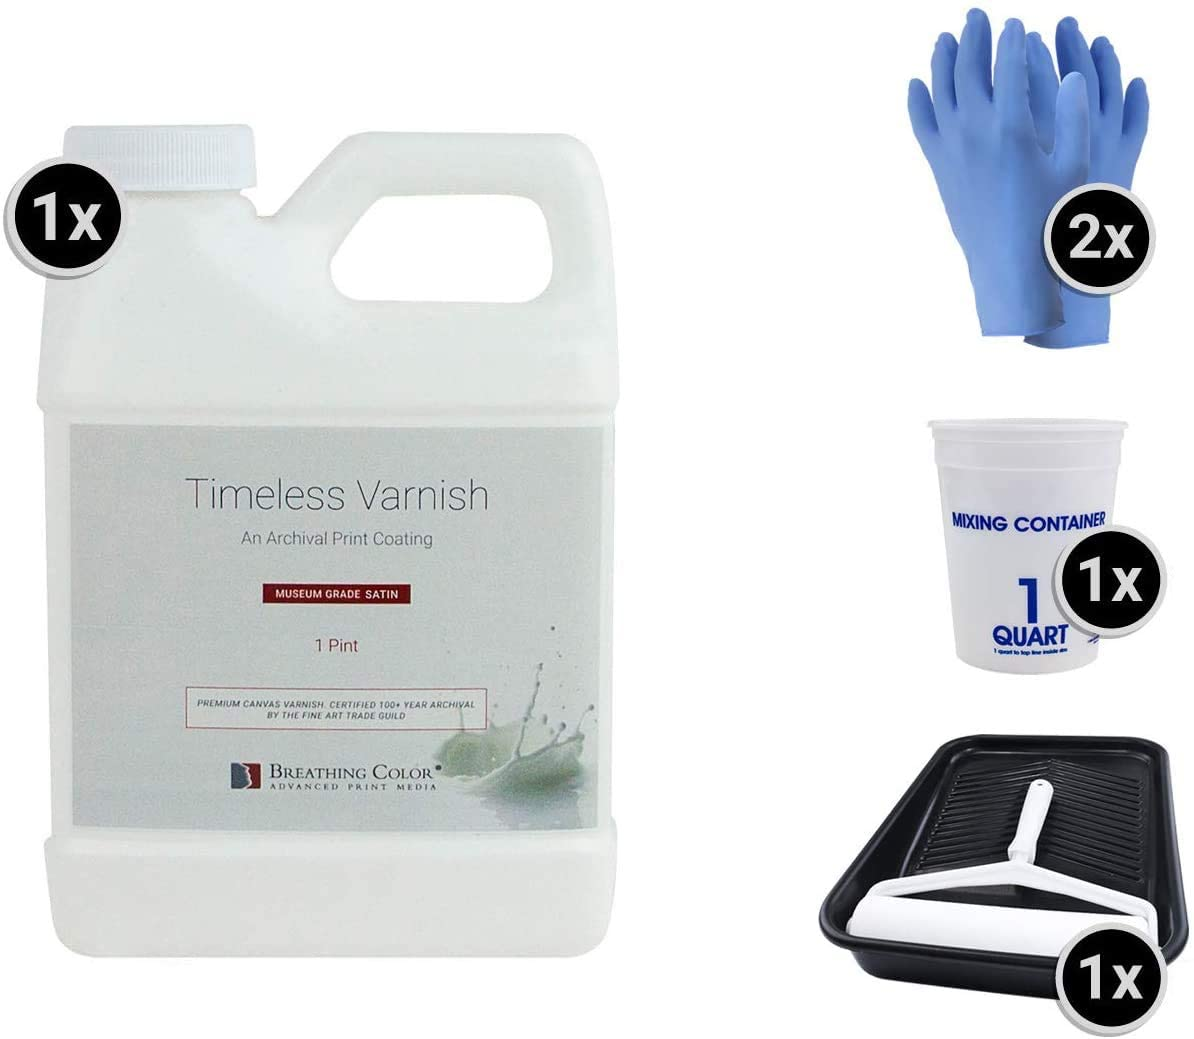 Timeless Archival Print Varnish Kit - 1 Pint, Satin Finish, Best Canvas Coating, Certified Archival Quality, Includes Foam Roller, Mixing Cups, and Gloves Bundle